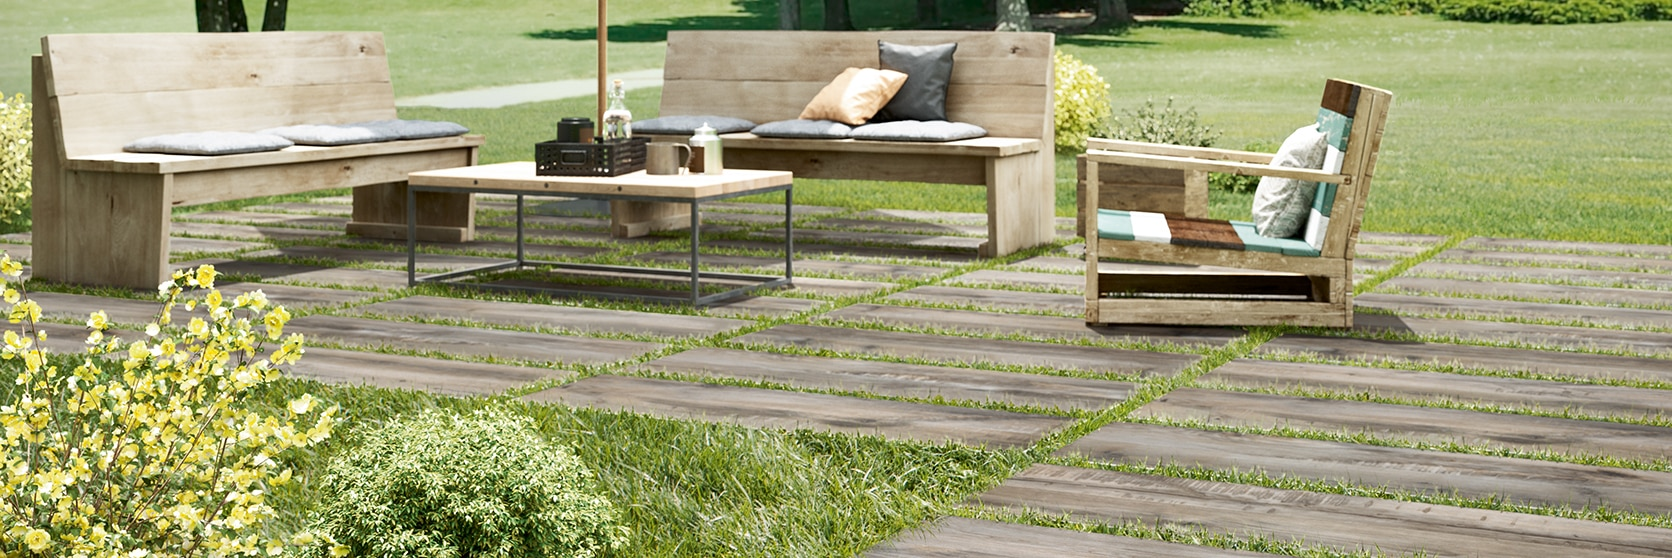 """Lawn furniture on 16"""" x 48"""" 2 centimeter porcelain pavers that look like seasoned wood, set on top of green grass."""